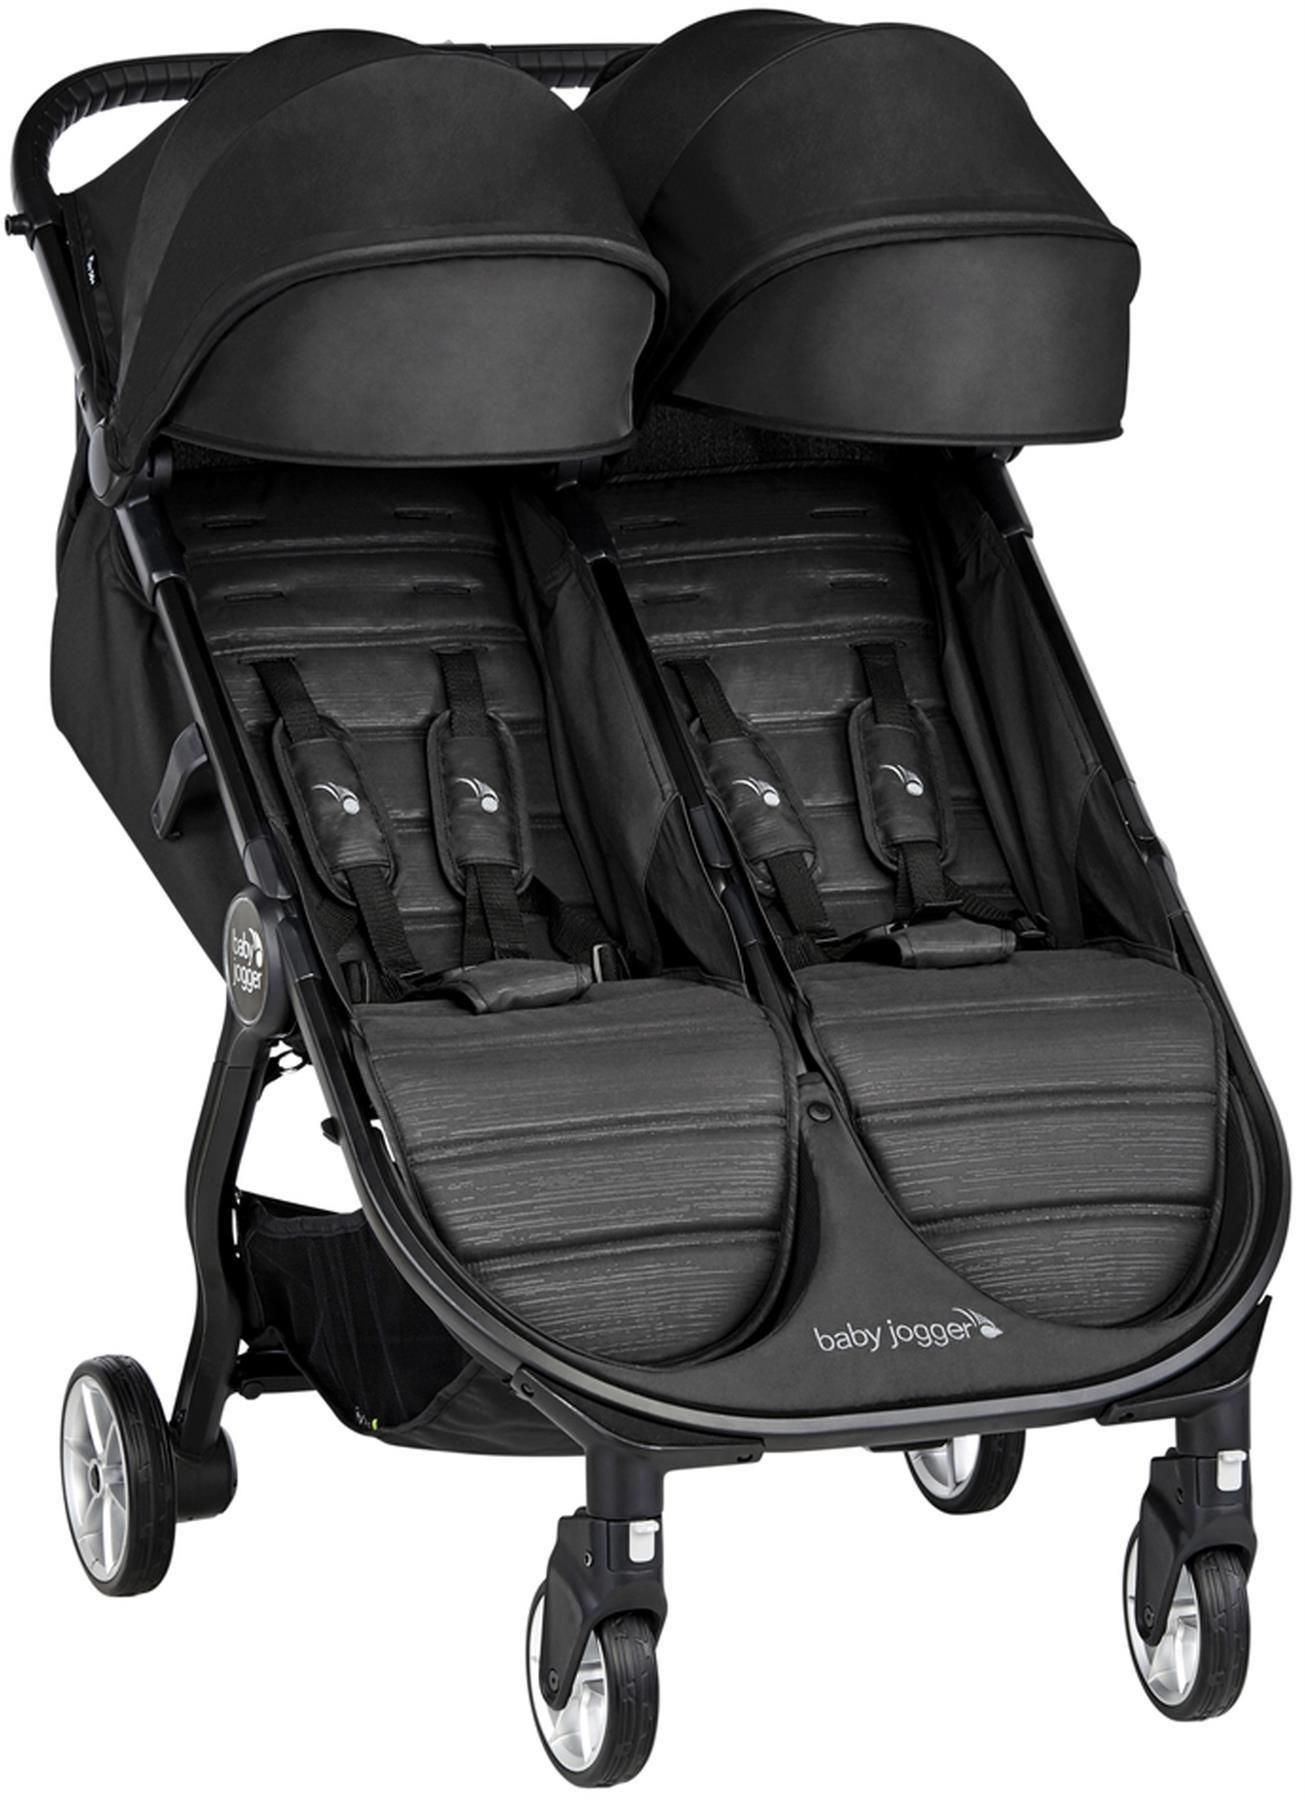 22+ Baby jogger city tour 2 travel system ideas